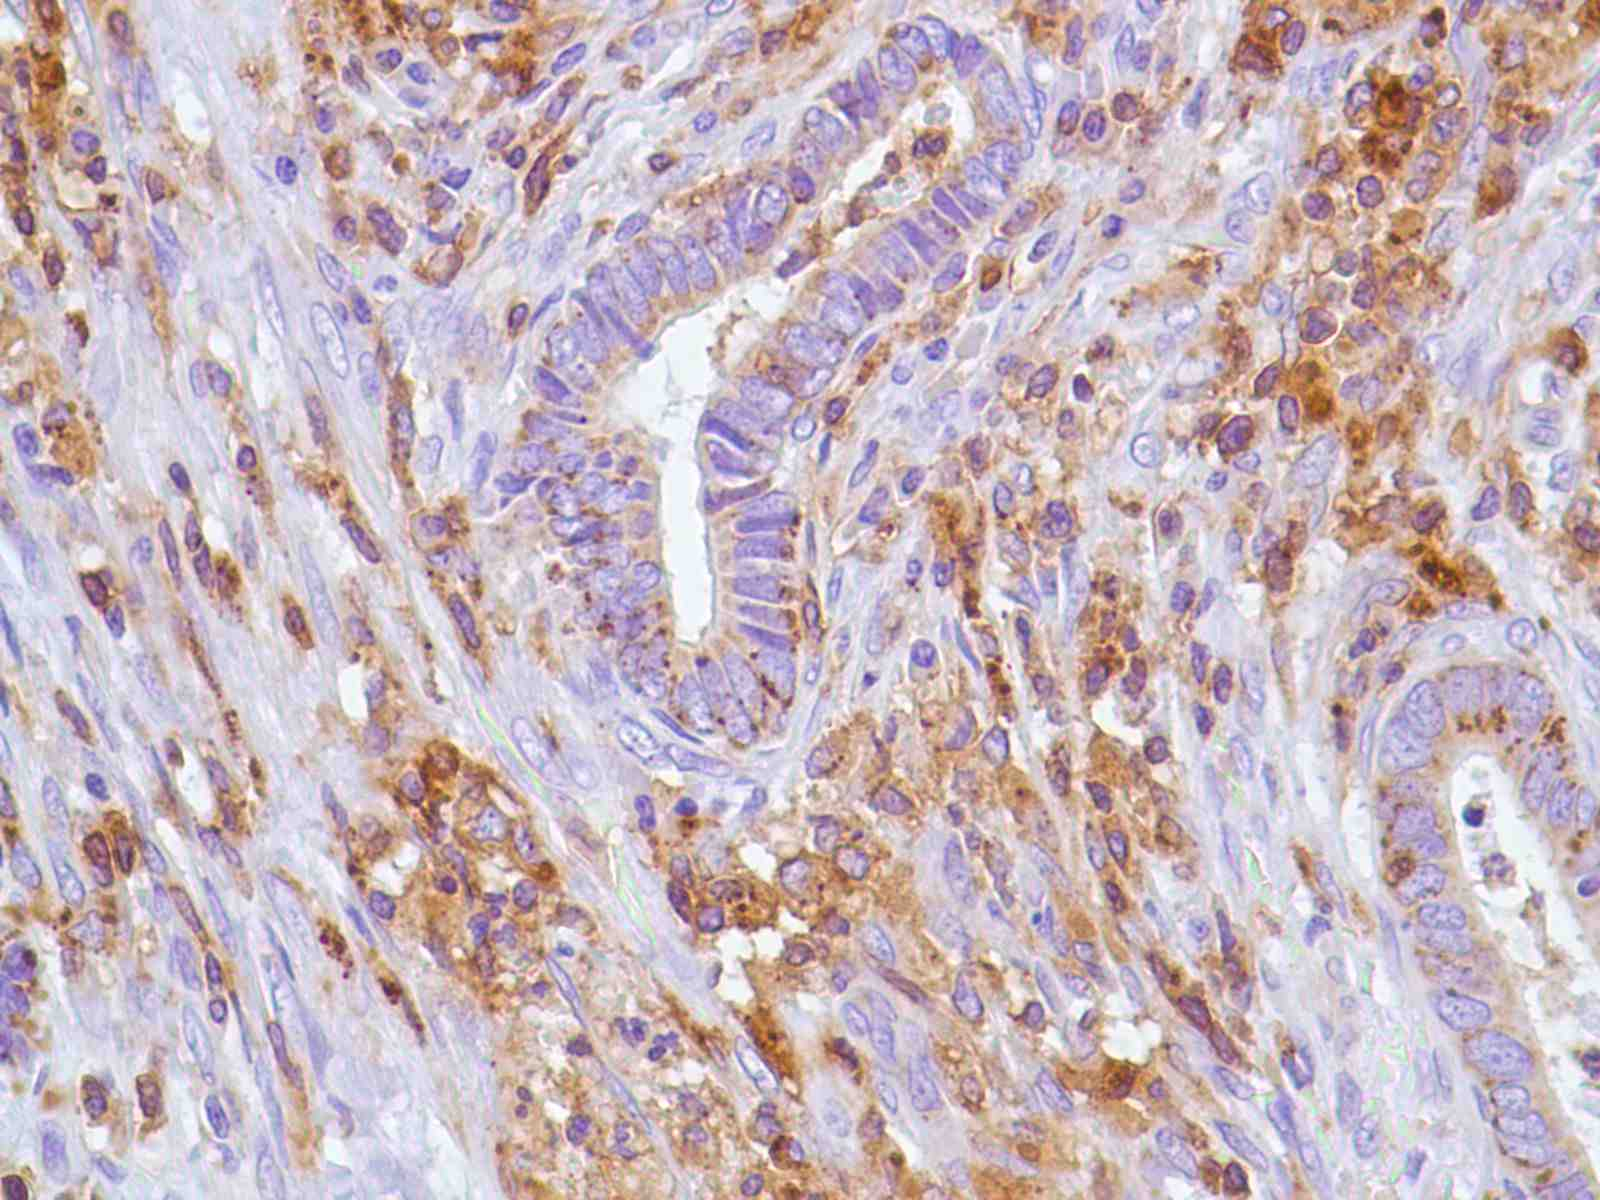 Human Colon Adenocarcinoma stained with anti-CD43 antibody